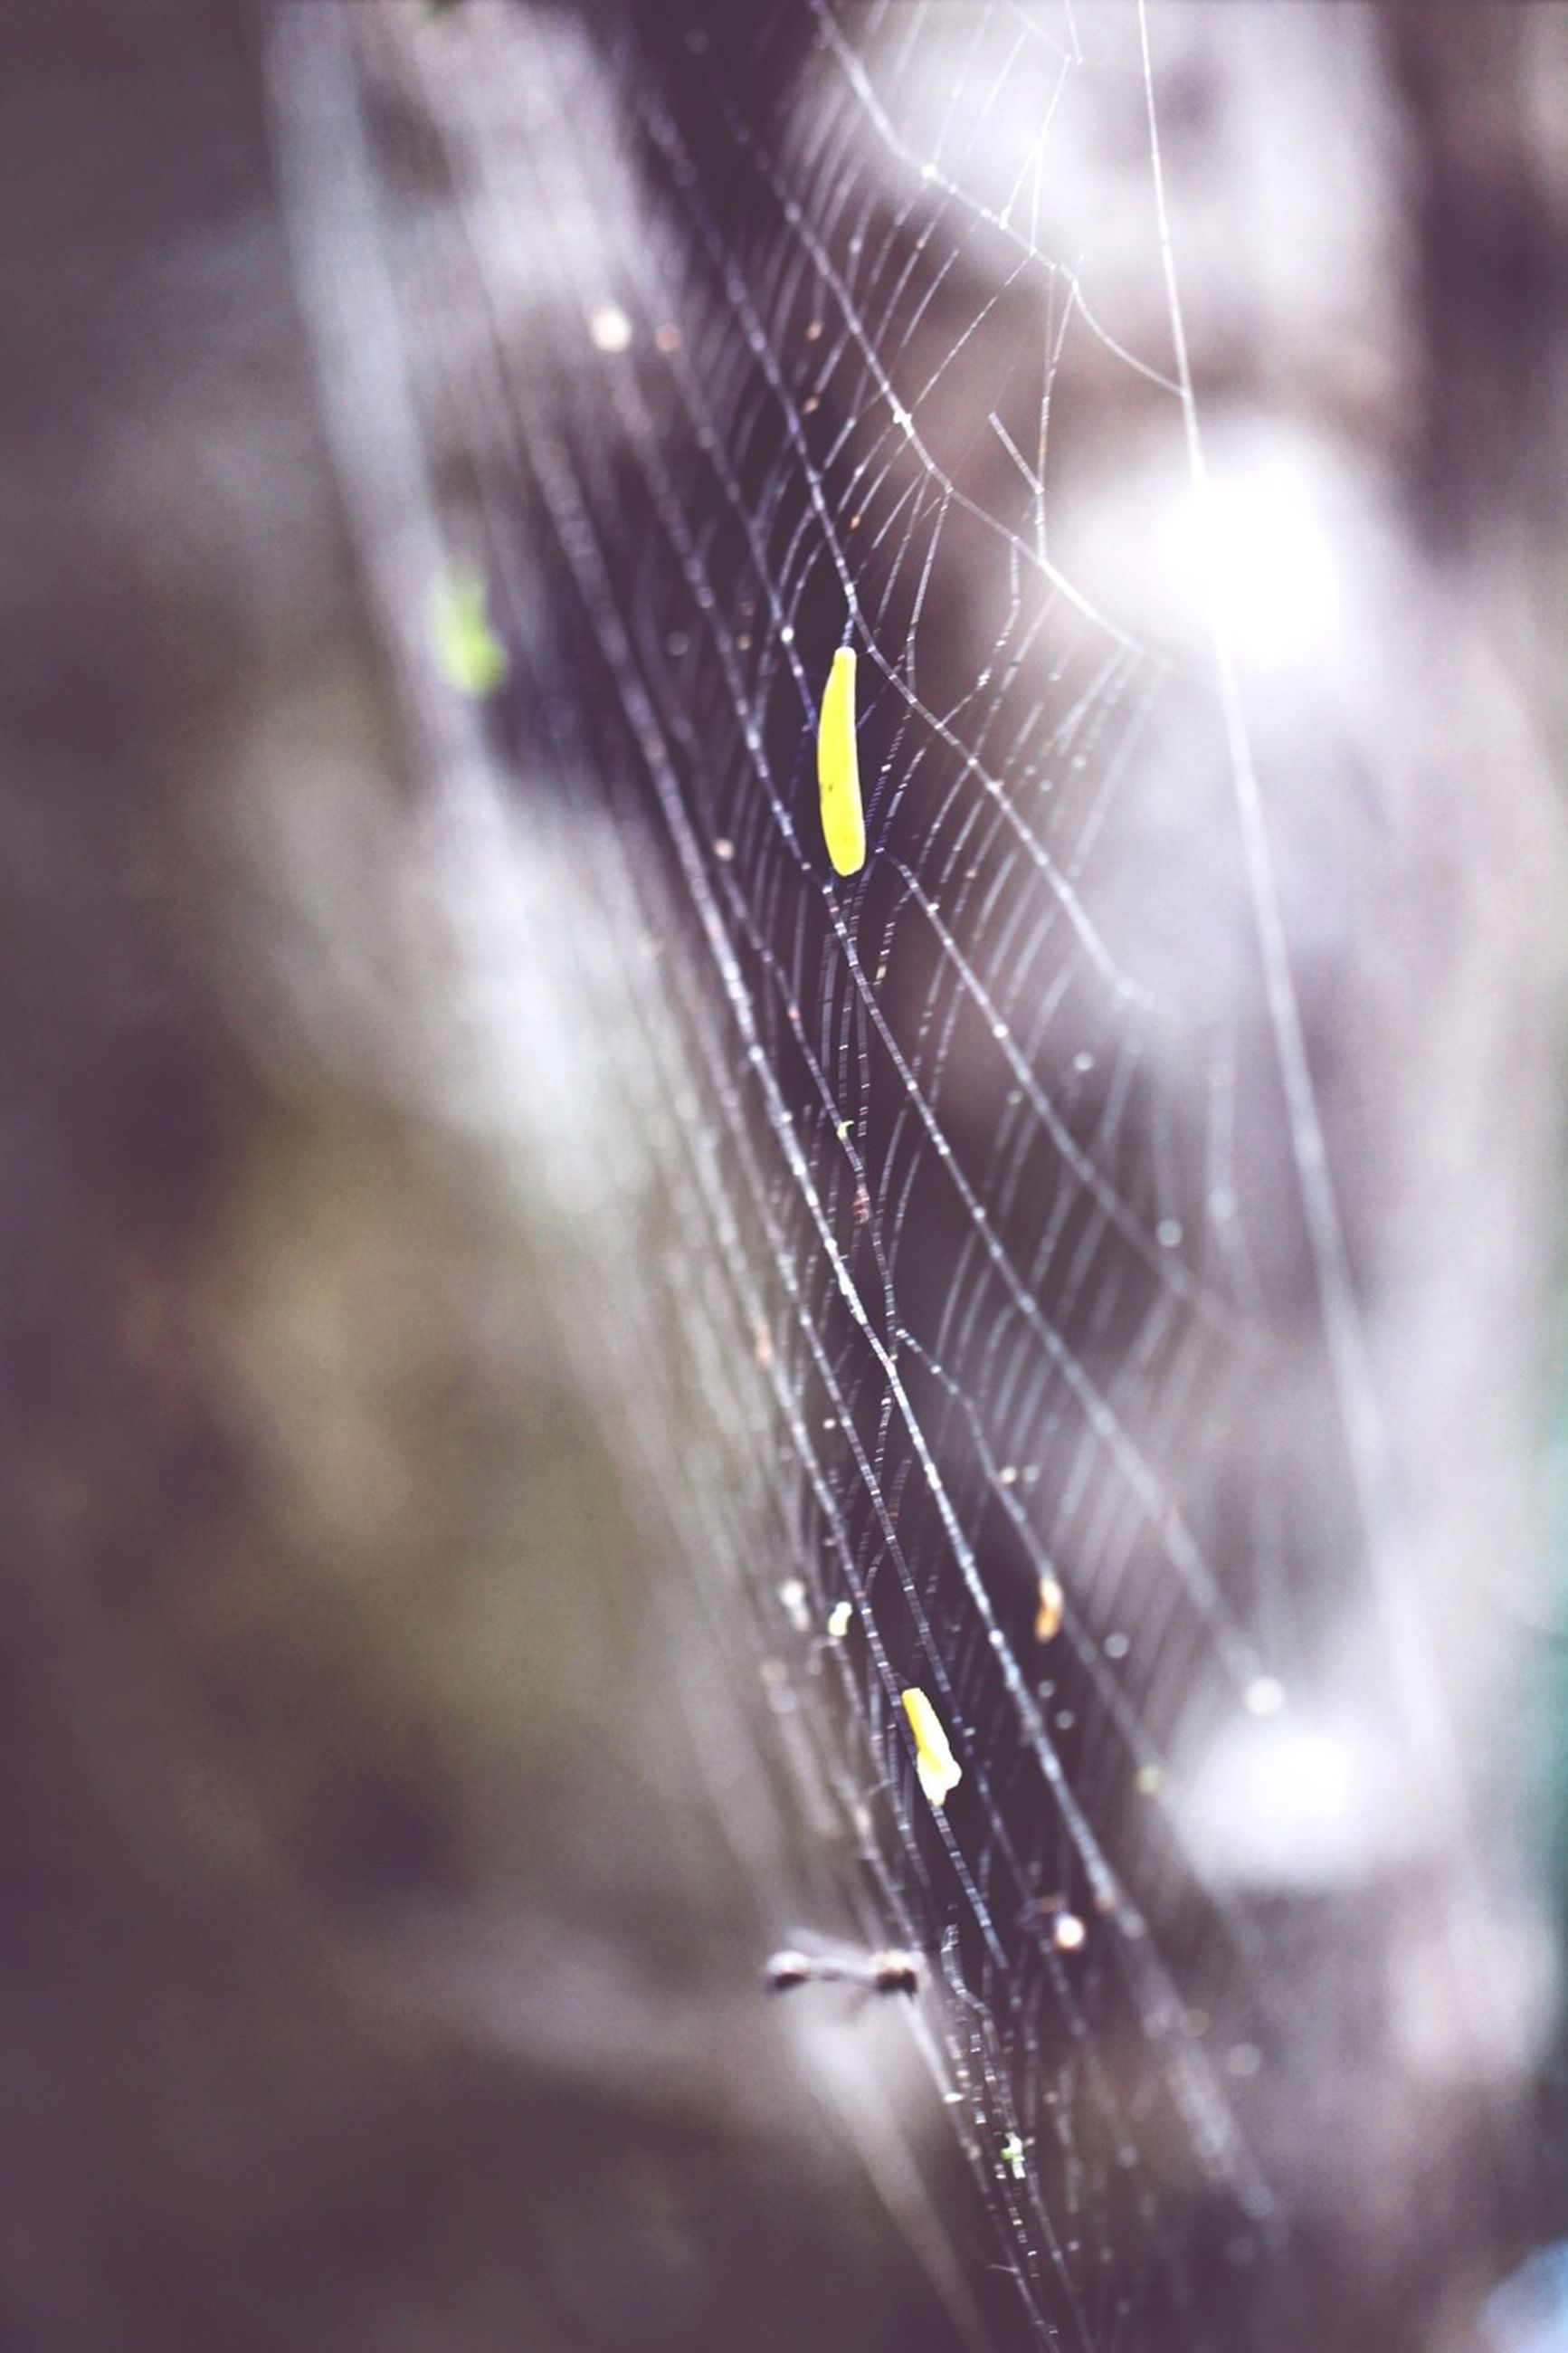 one animal, insect, animal themes, animals in the wild, wildlife, spider web, focus on foreground, spider, close-up, dragonfly, selective focus, nature, animal wing, full length, outdoors, zoology, day, no people, fragility, animal antenna